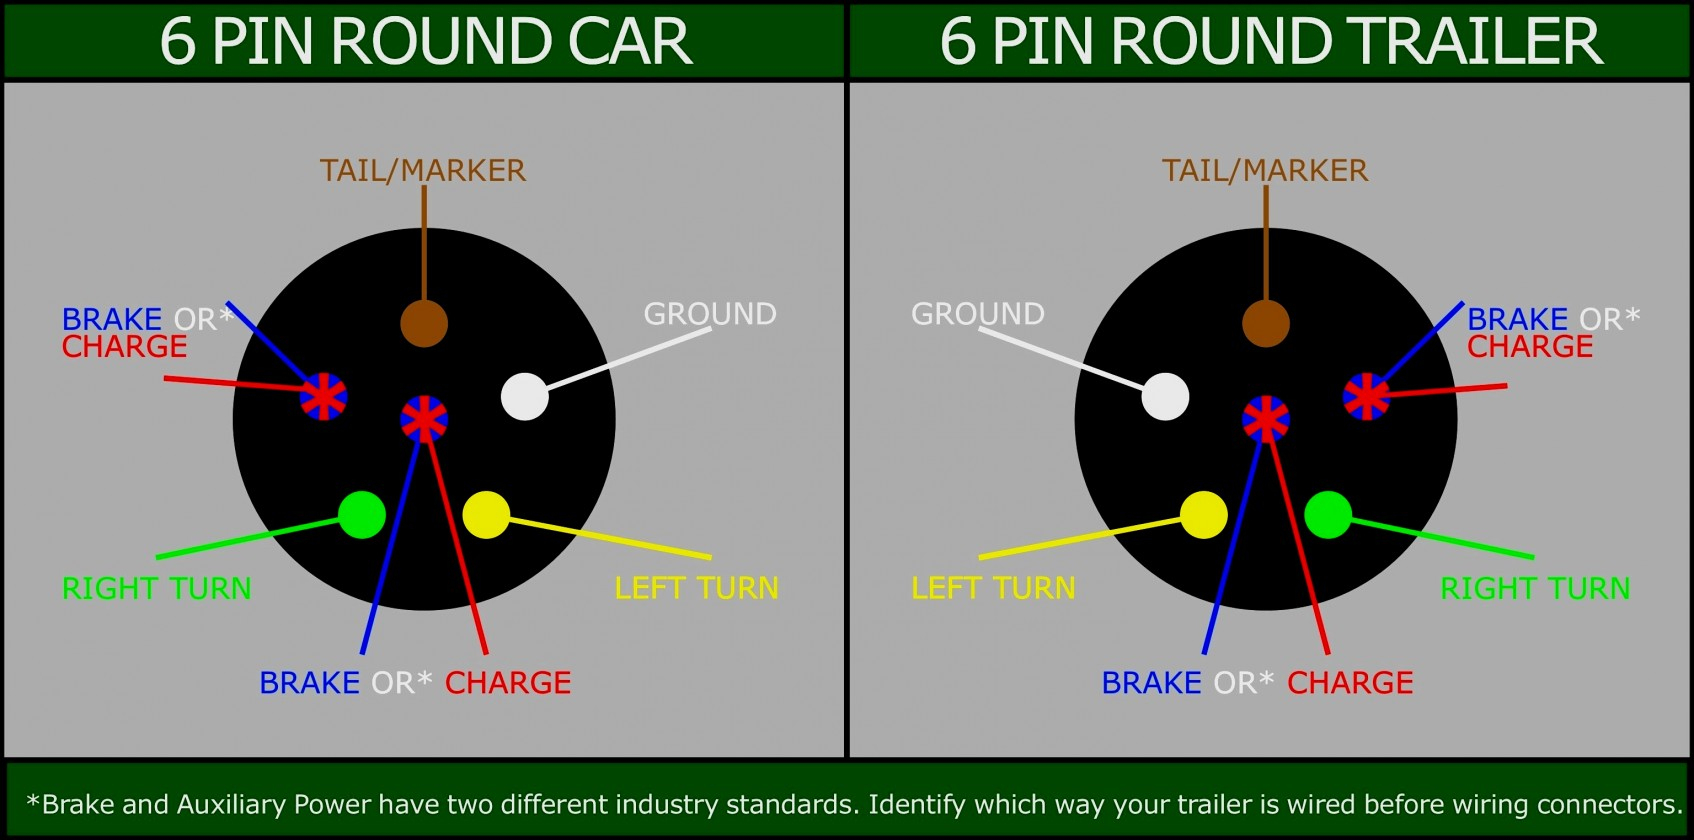 6 Round Trailer Plug Wiring Diagram - Today Wiring Diagram - Trailer Lights Wiring Diagram 6 Pin